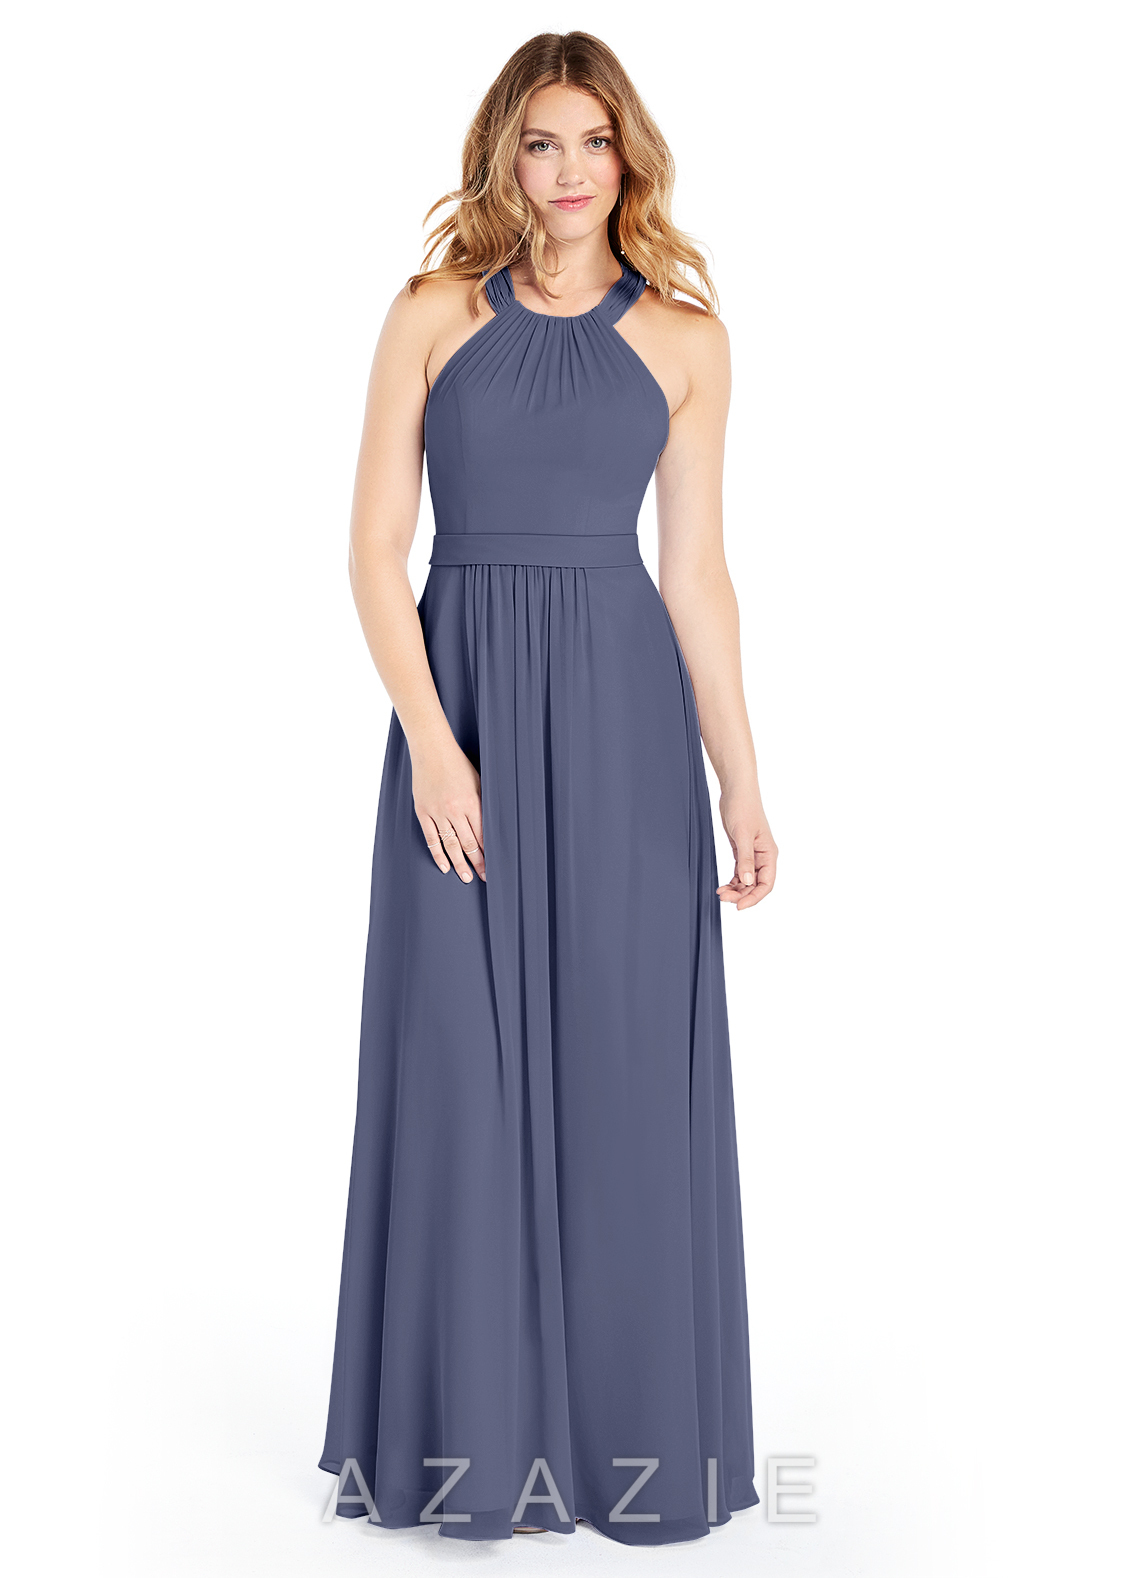 Azazie Misha Bridesmaid Dress  04e5142b60b7